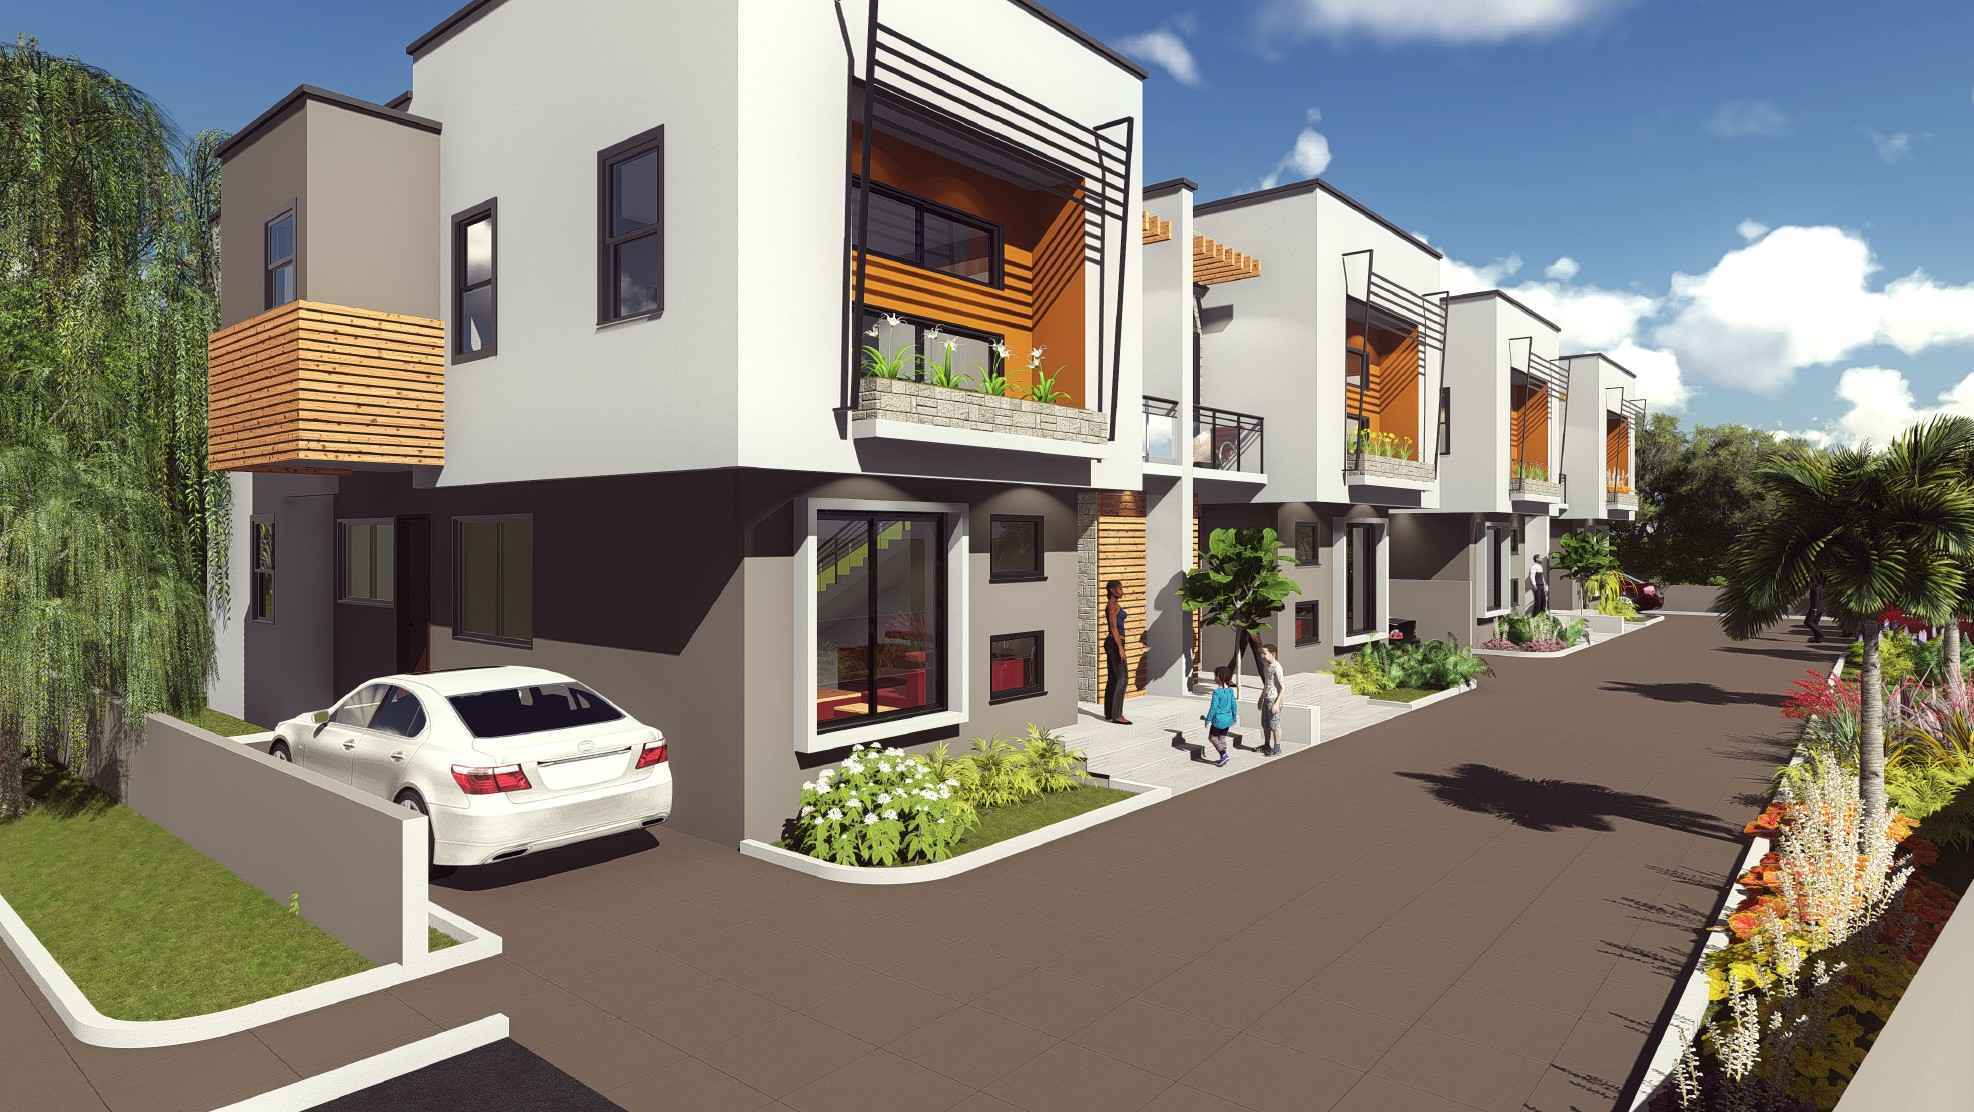 4 BEDROOM TOWNHOUSE FOR SALE AT EAST AIRPORT